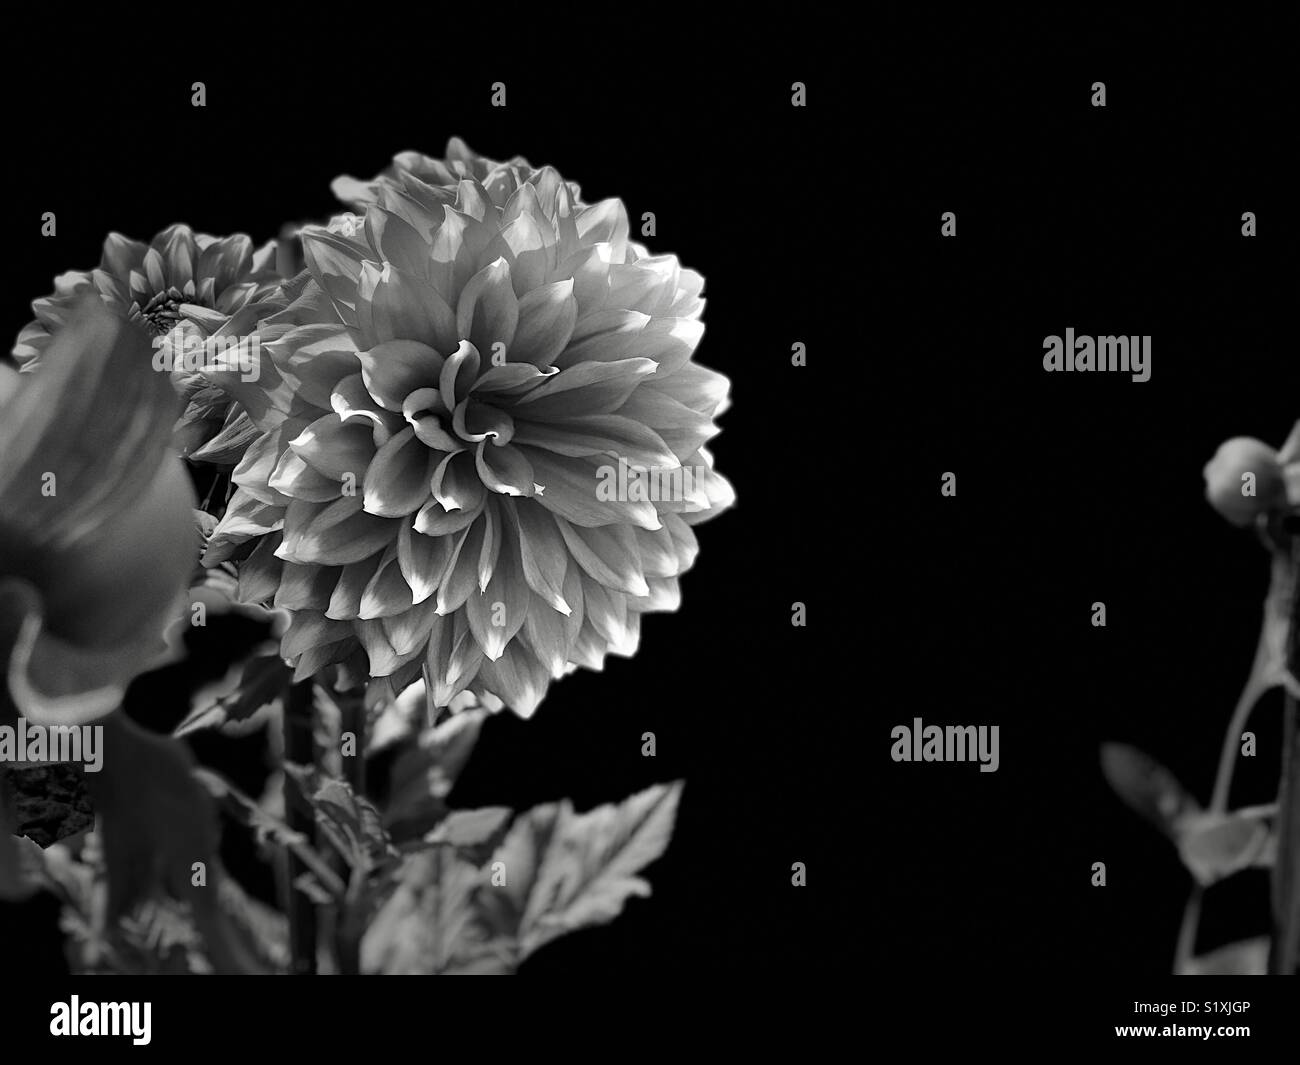 India dahlia flower stock photos india dahlia flower stock images black and white image of dahlia flowernew delhiindia stock image izmirmasajfo Gallery